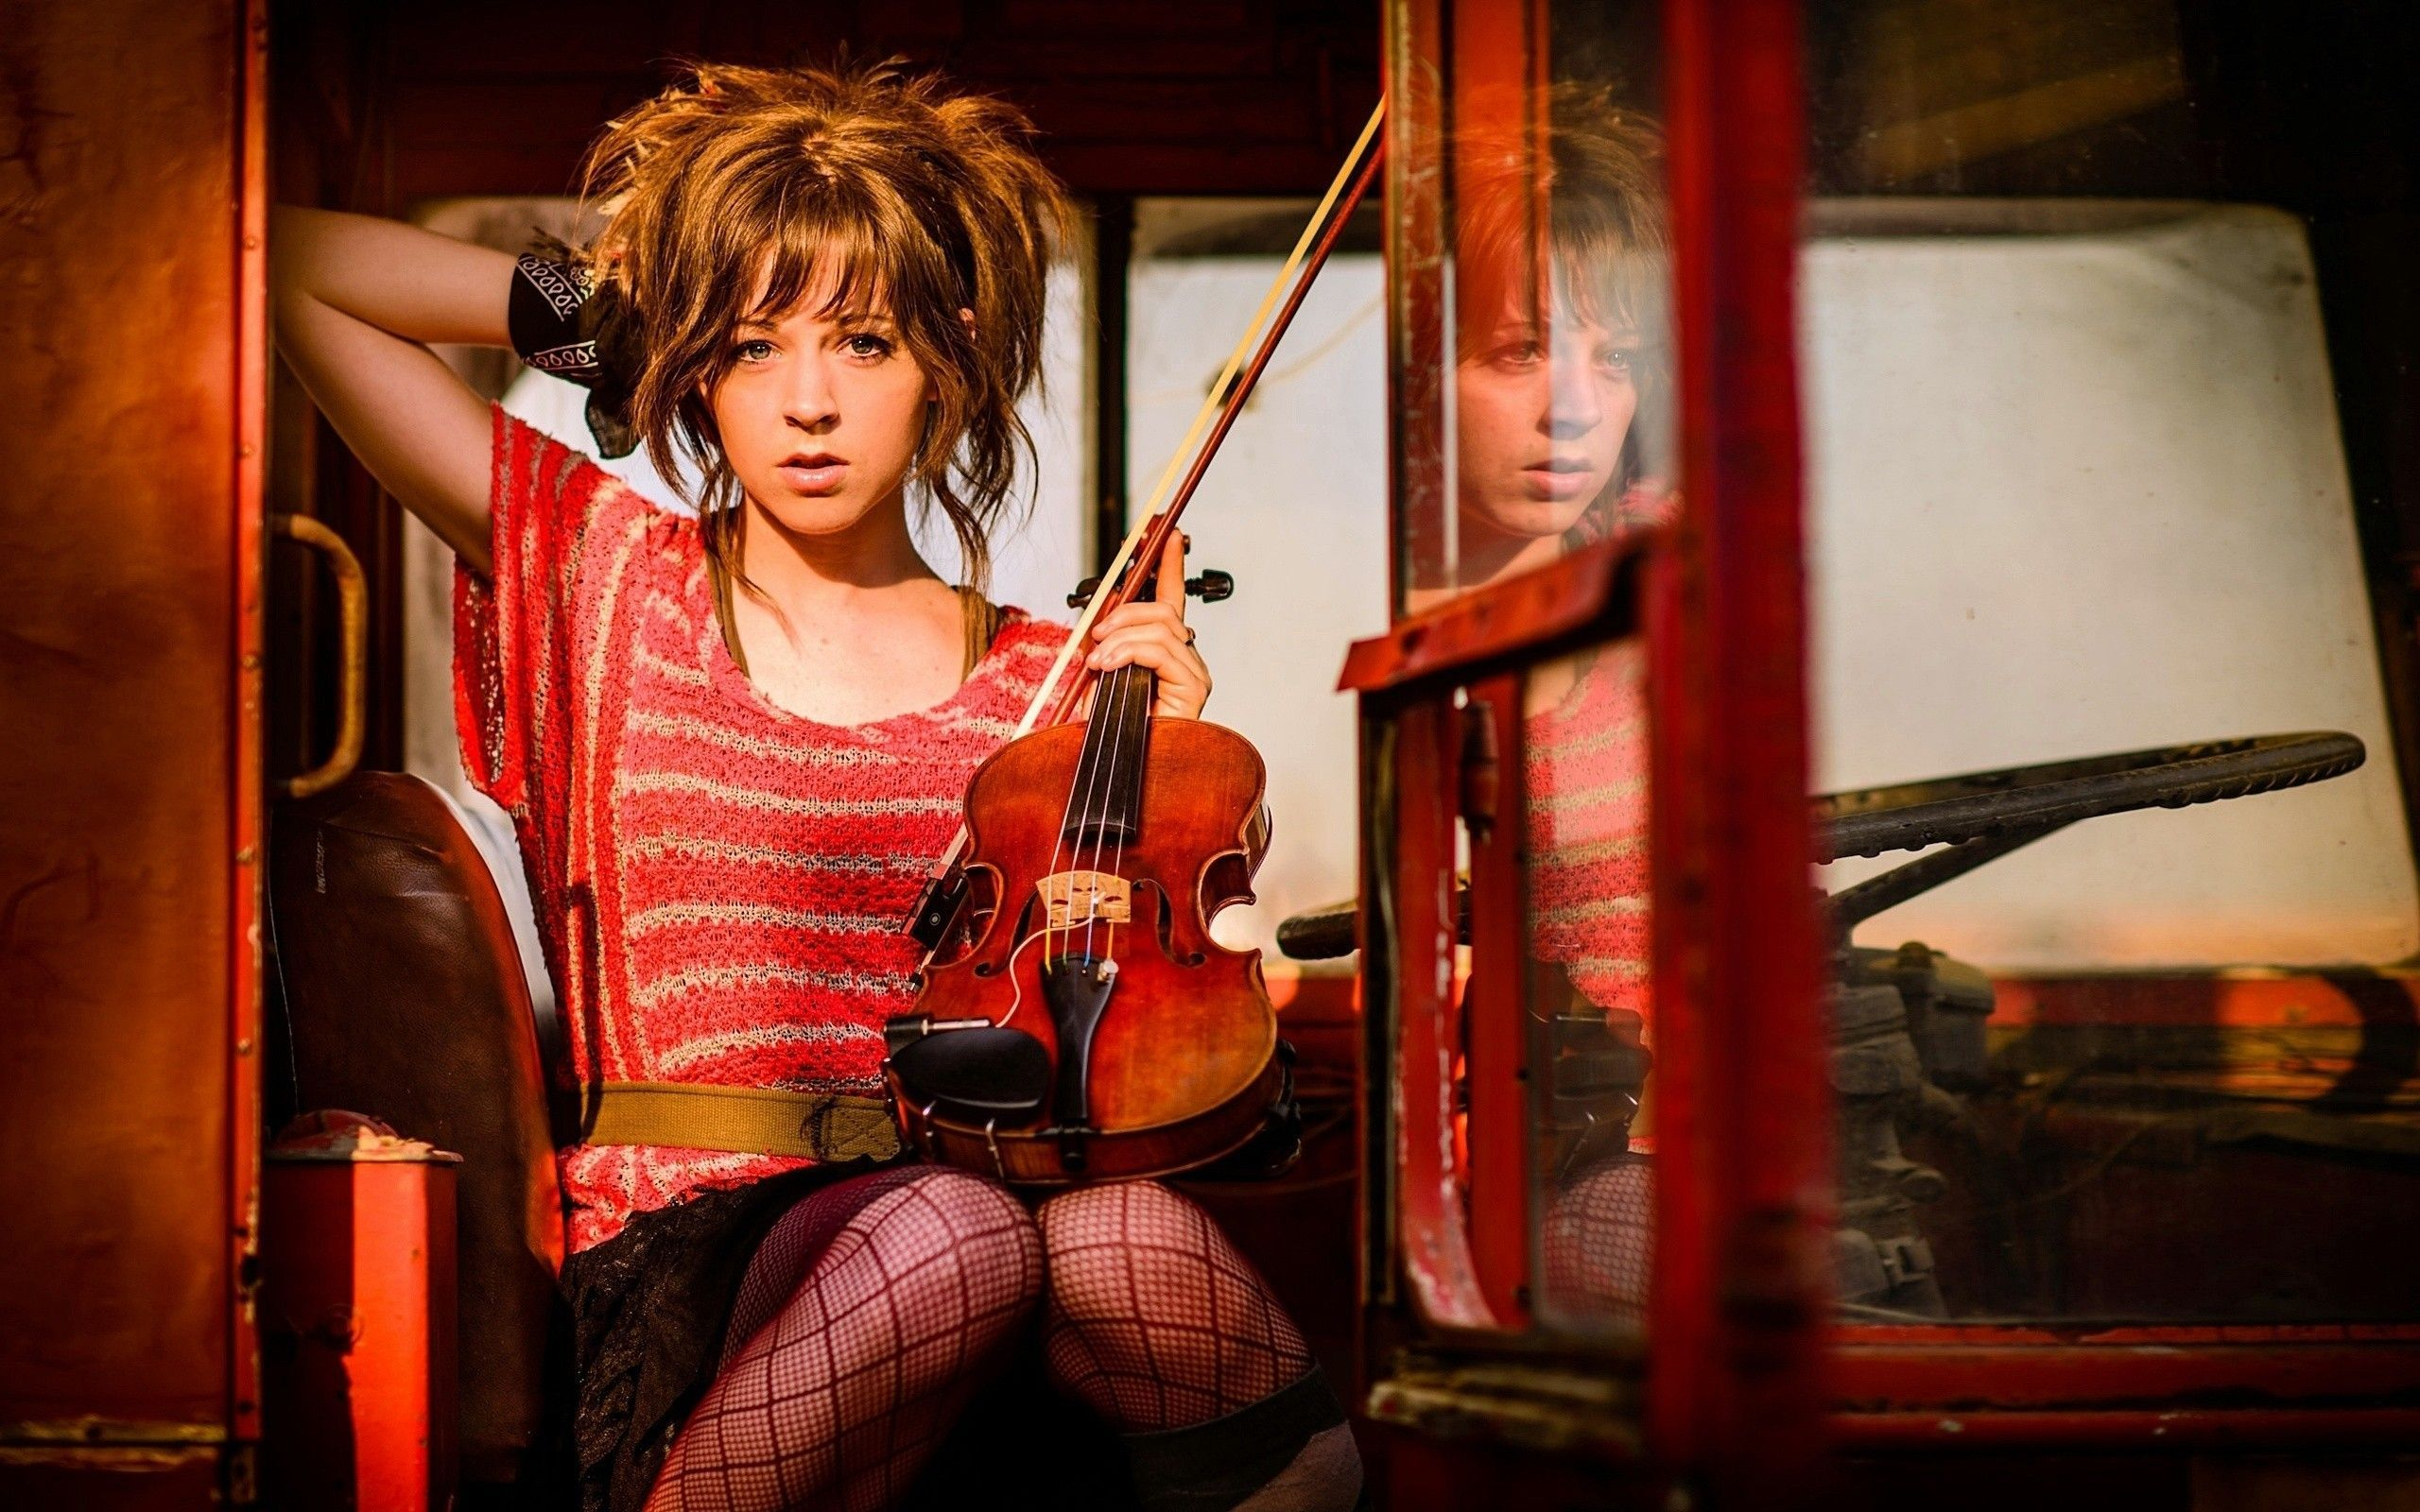 Fantastic Lindsey Stirling Wallpaper